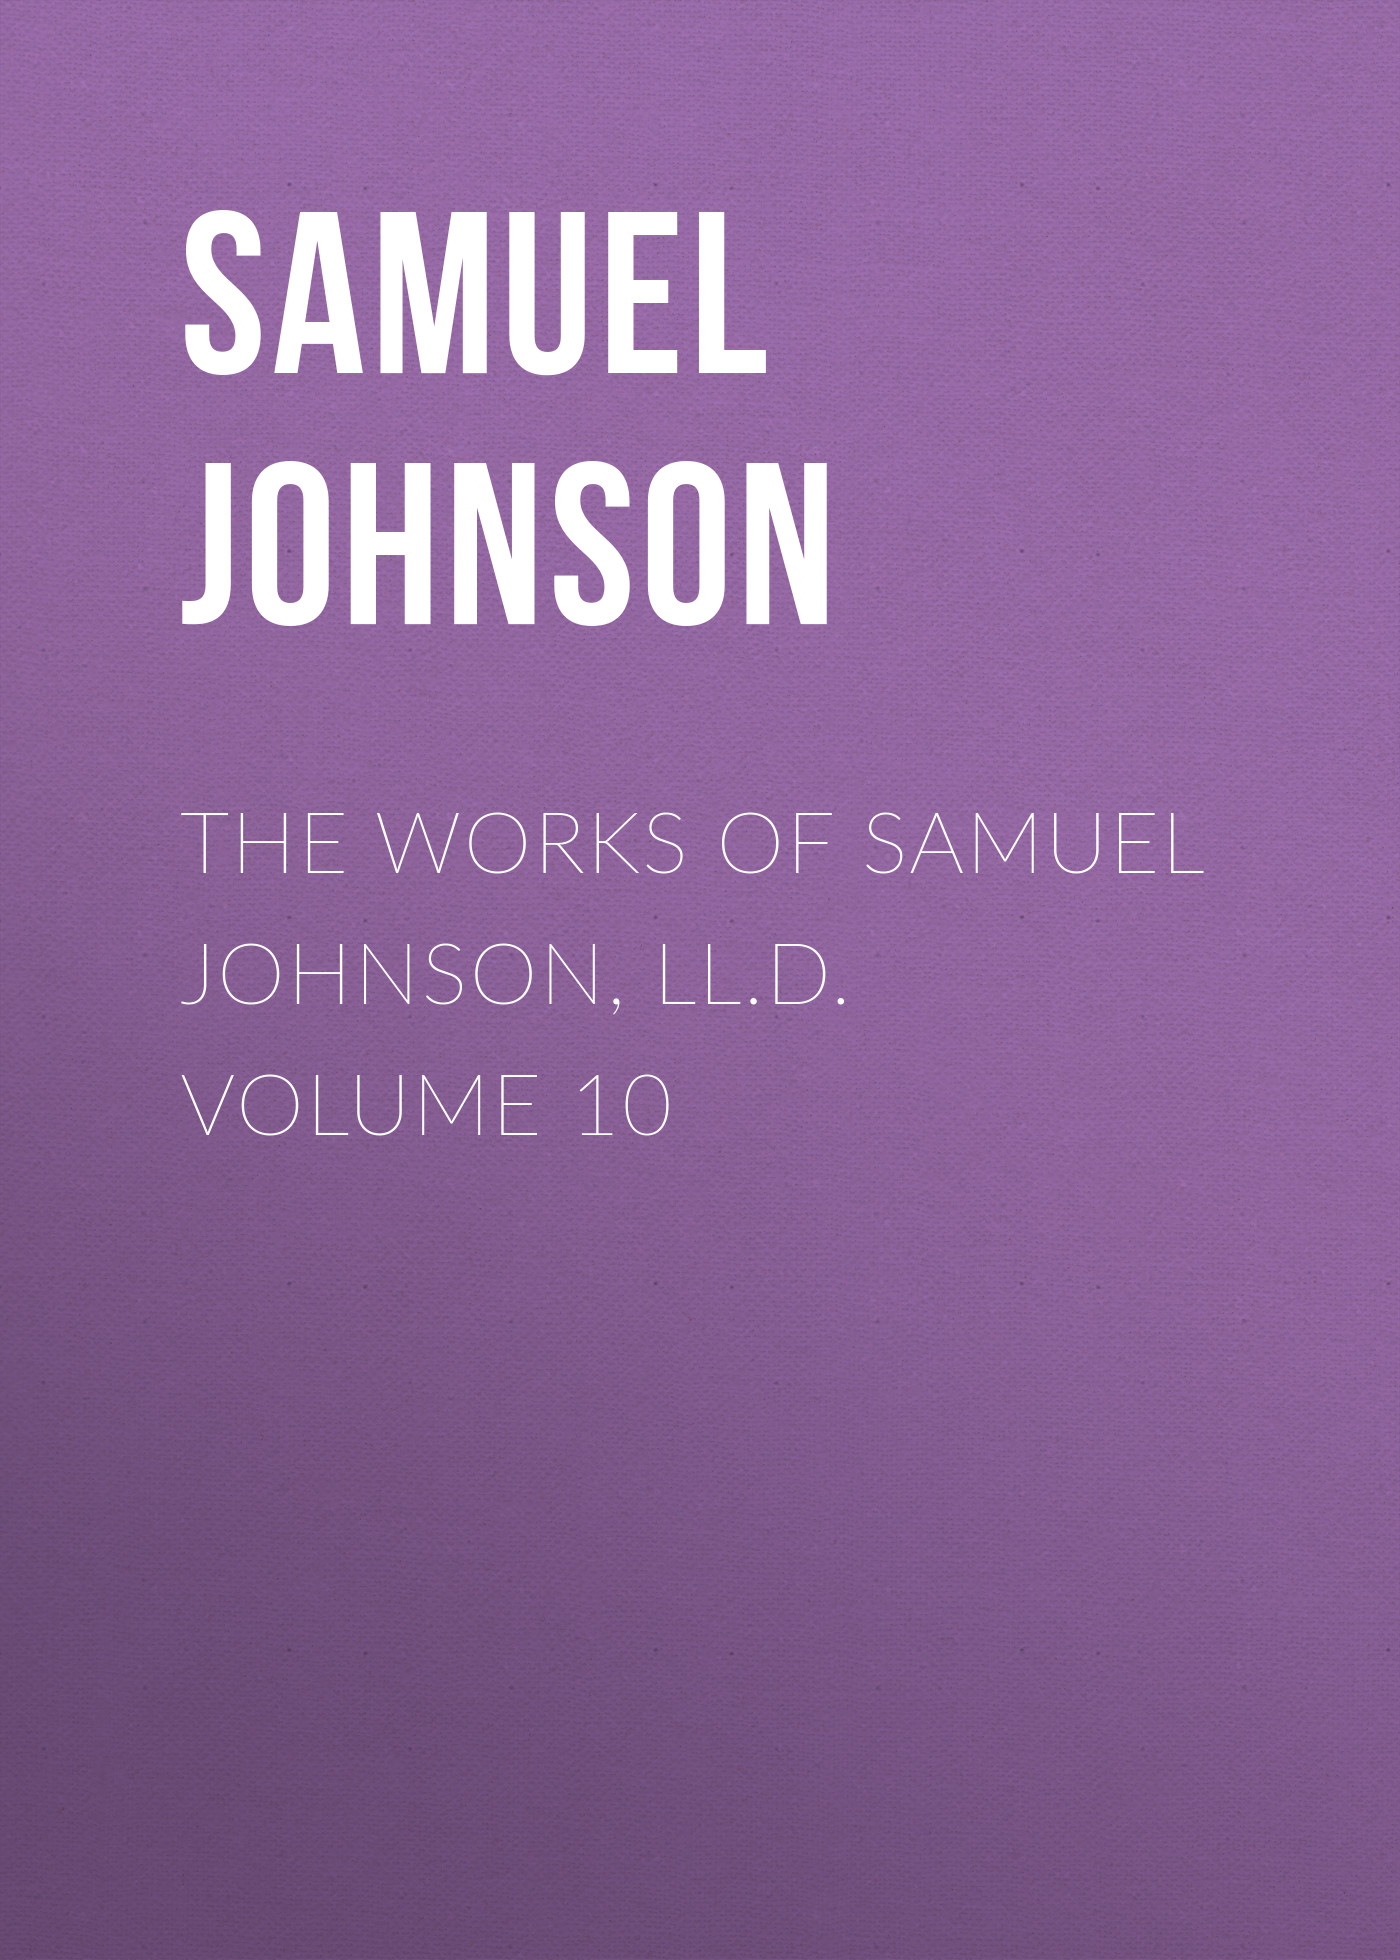 Samuel Johnson The Works of Samuel Johnson, LL.D. Volume 10 цена и фото